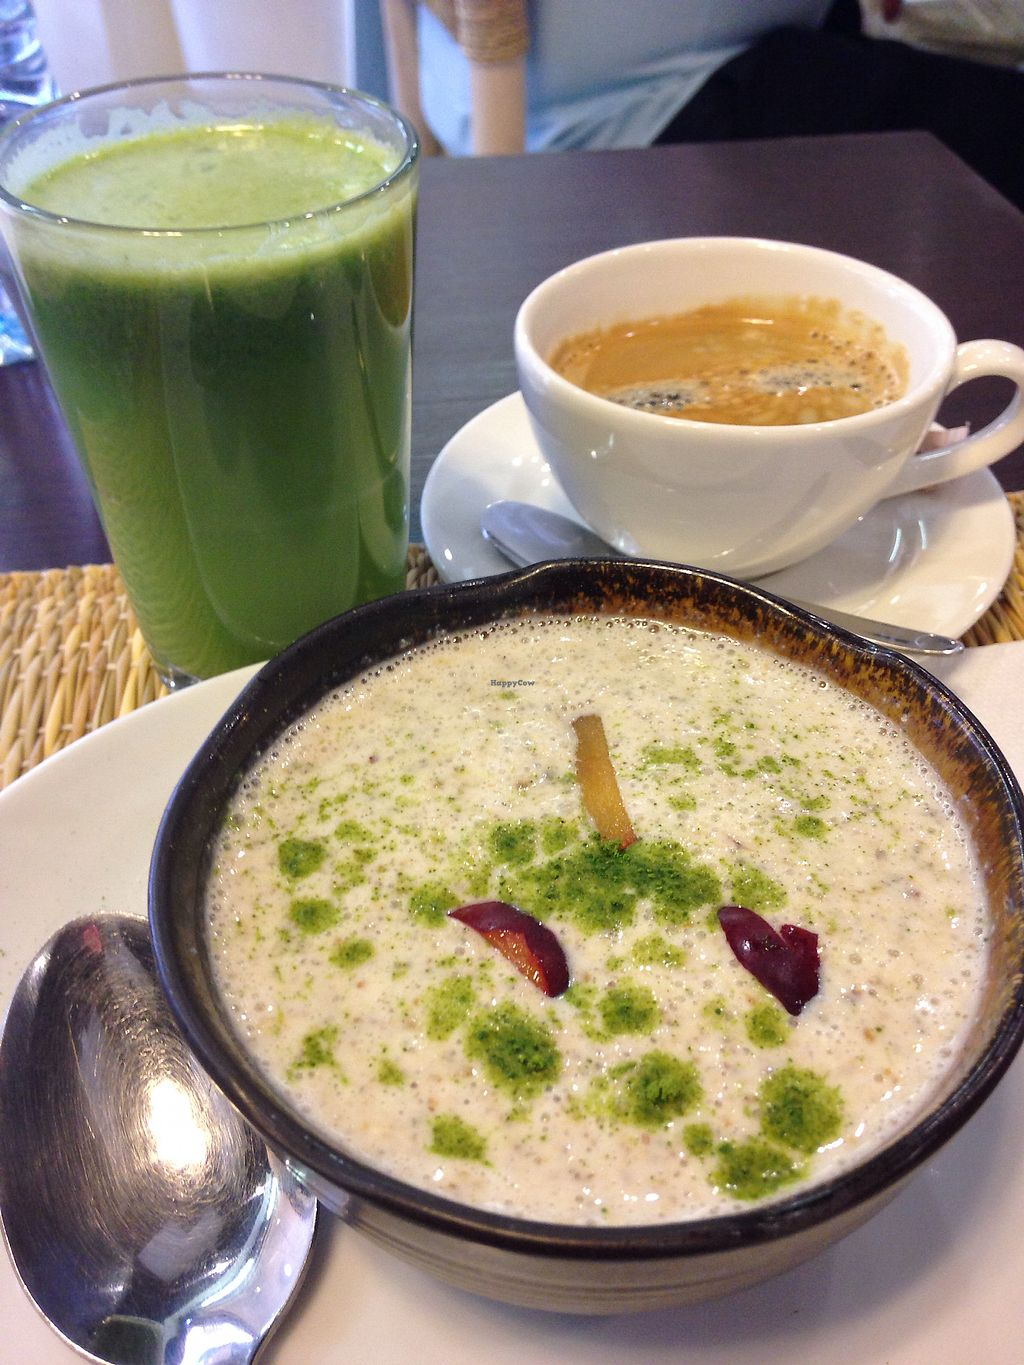 """Photo of Ayaso Concept Store Cafe  by <a href=""""/members/profile/Lemanieg"""">Lemanieg</a> <br/>The Booster breakfast option and green juice  <br/> October 6, 2017  - <a href='/contact/abuse/image/73233/312331'>Report</a>"""